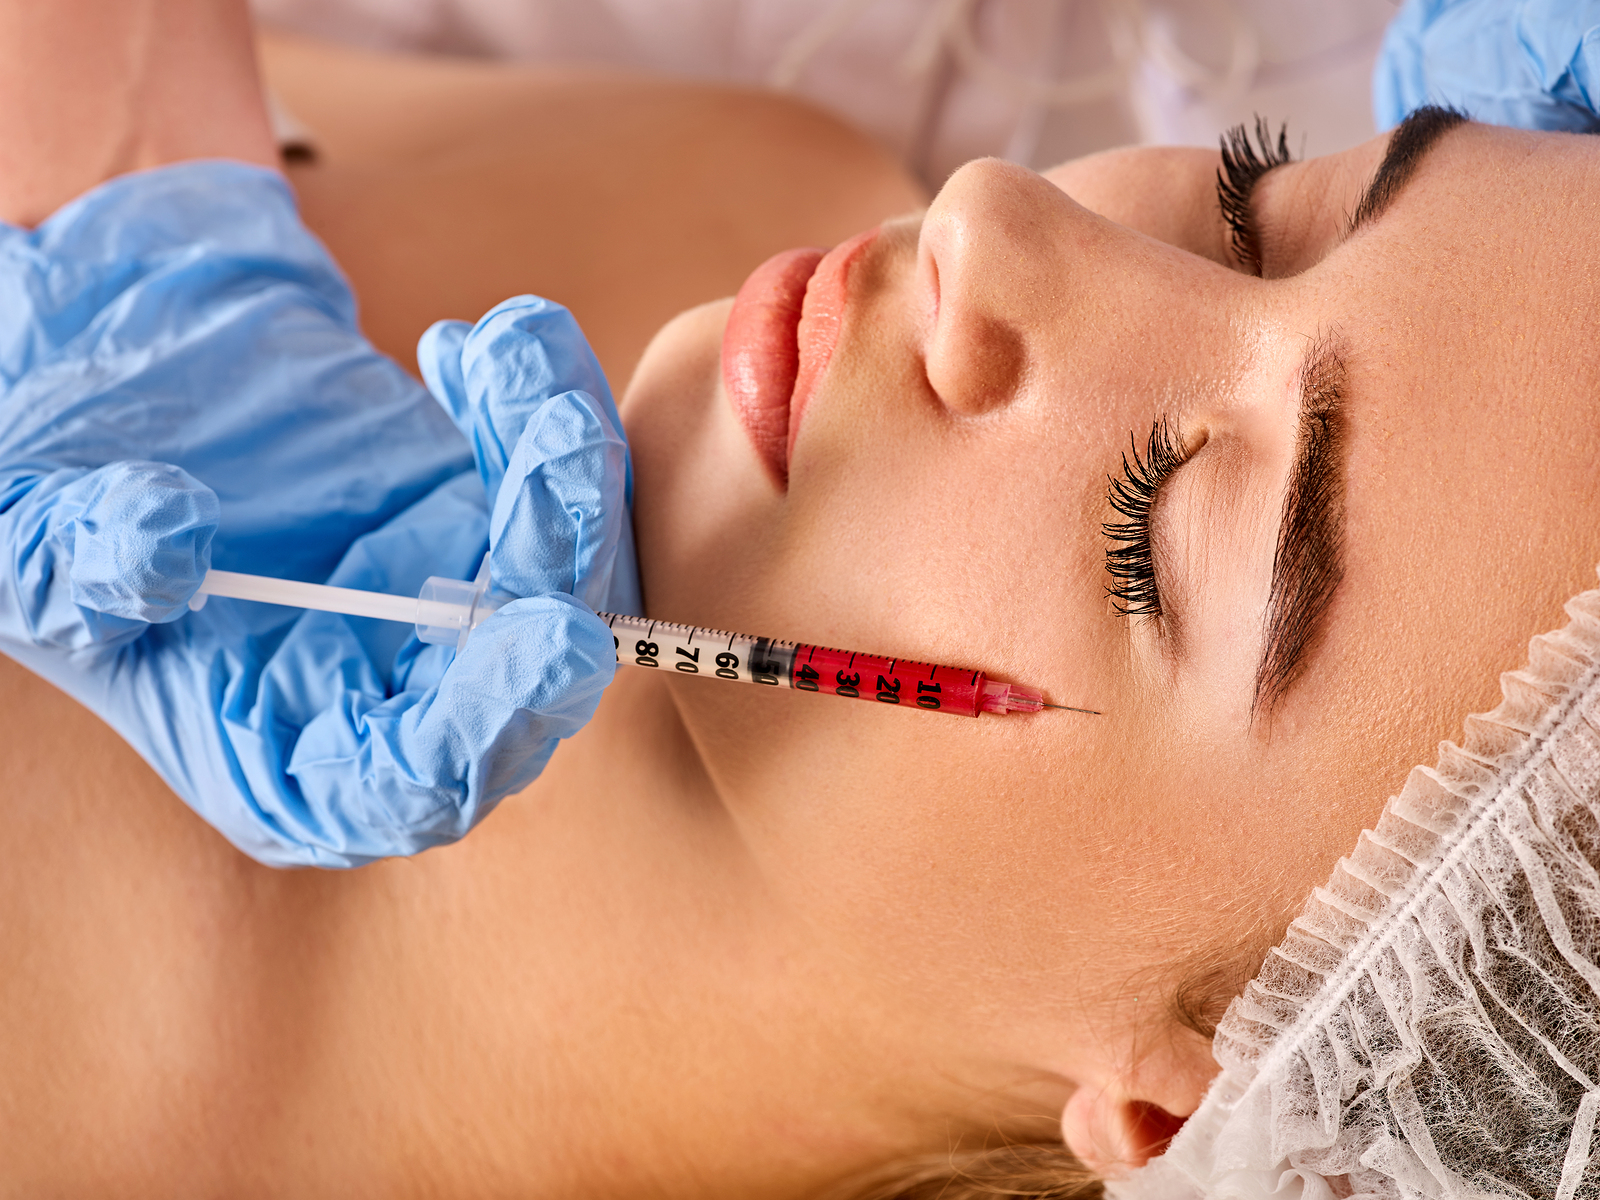 What to Watch Out for With Mainstream Facial Injectables